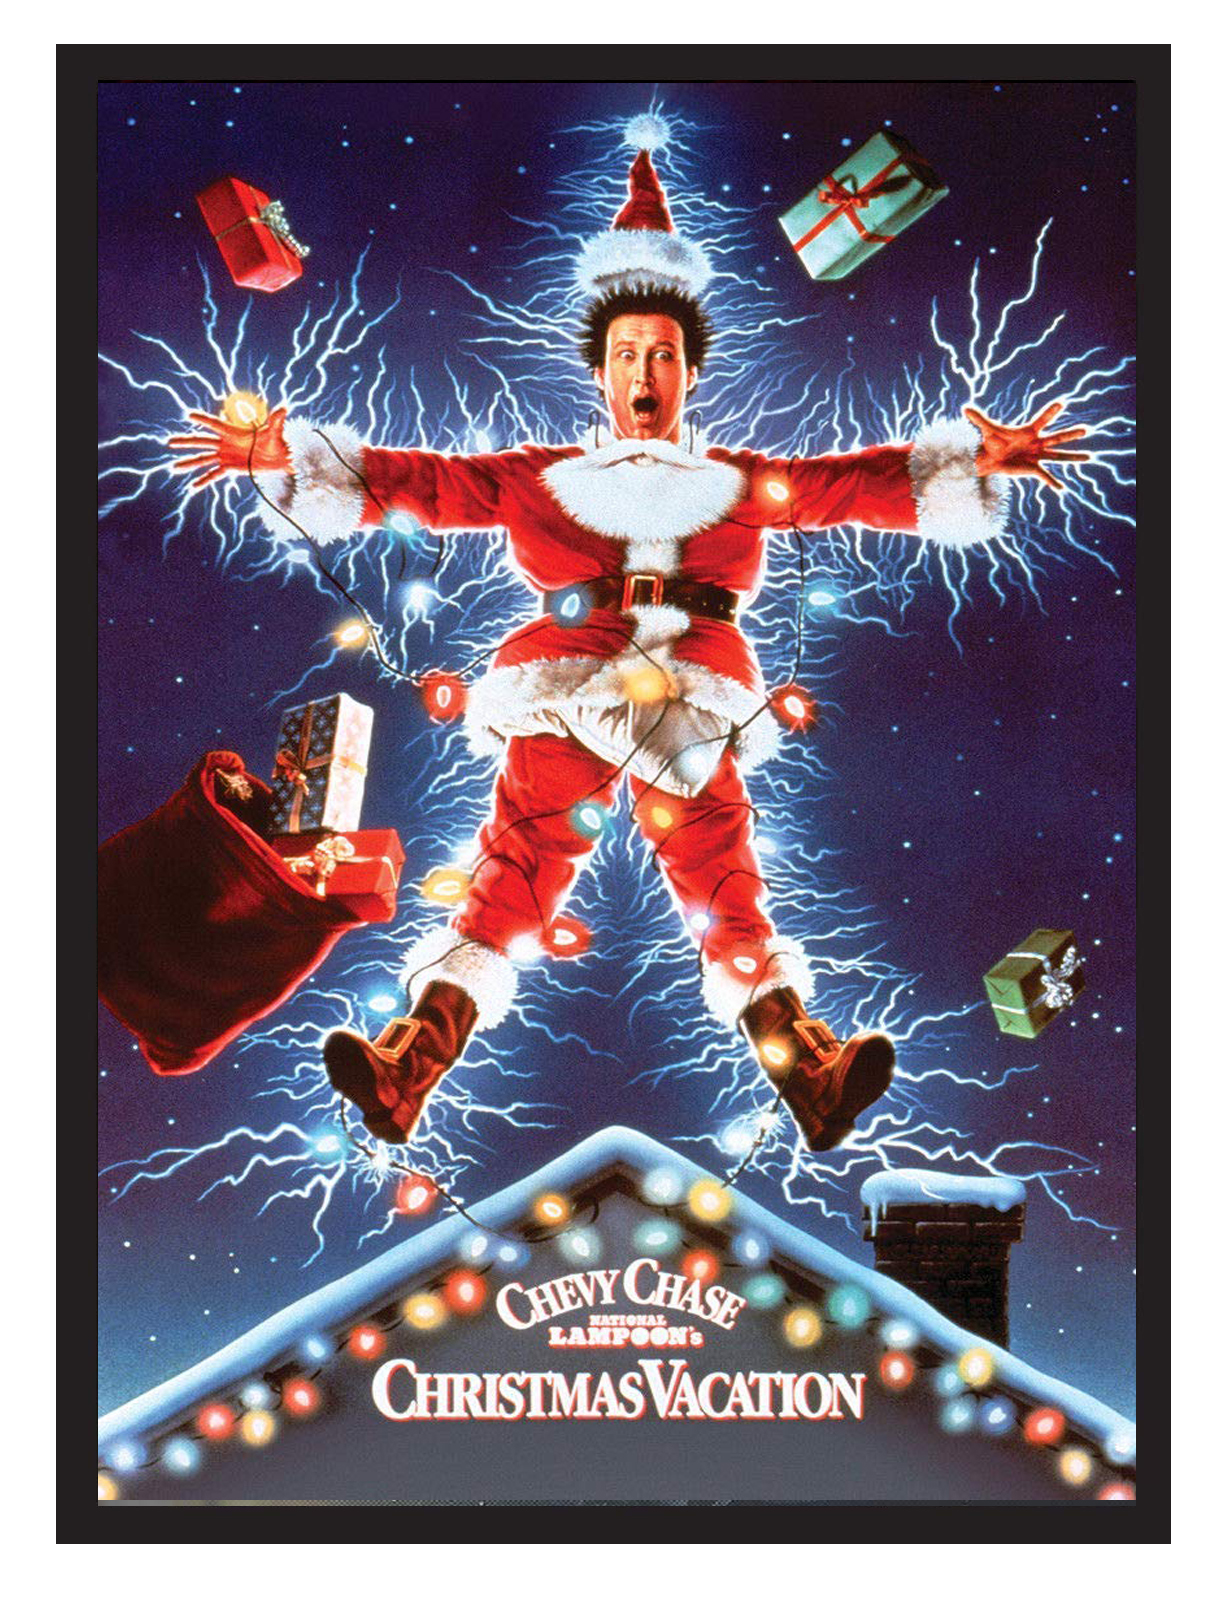 christmas vacation chevy chase movie poster 22x34 framed on a black frame made in usa